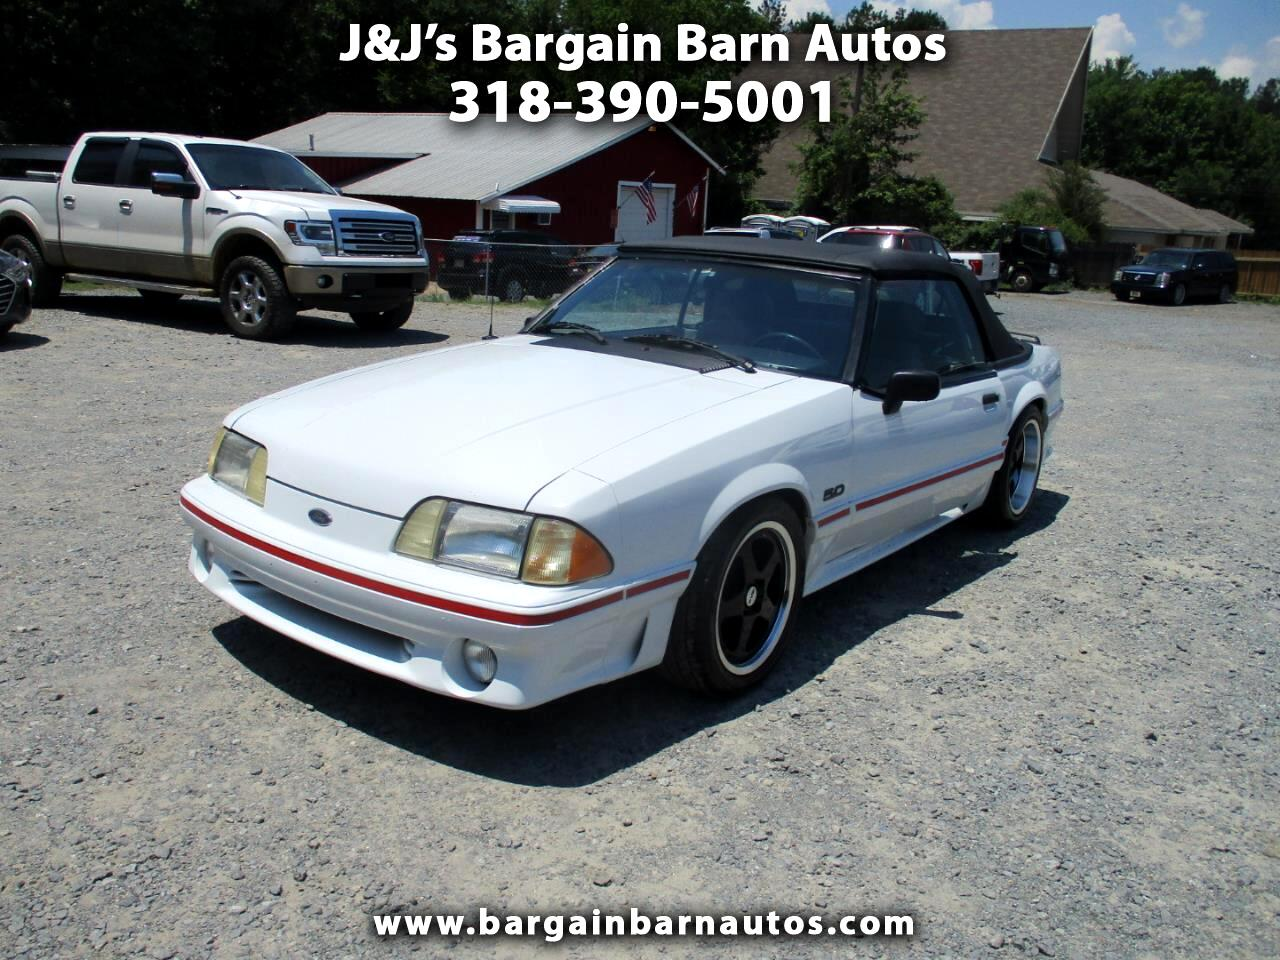 Ford Mustang GT convertible 1989